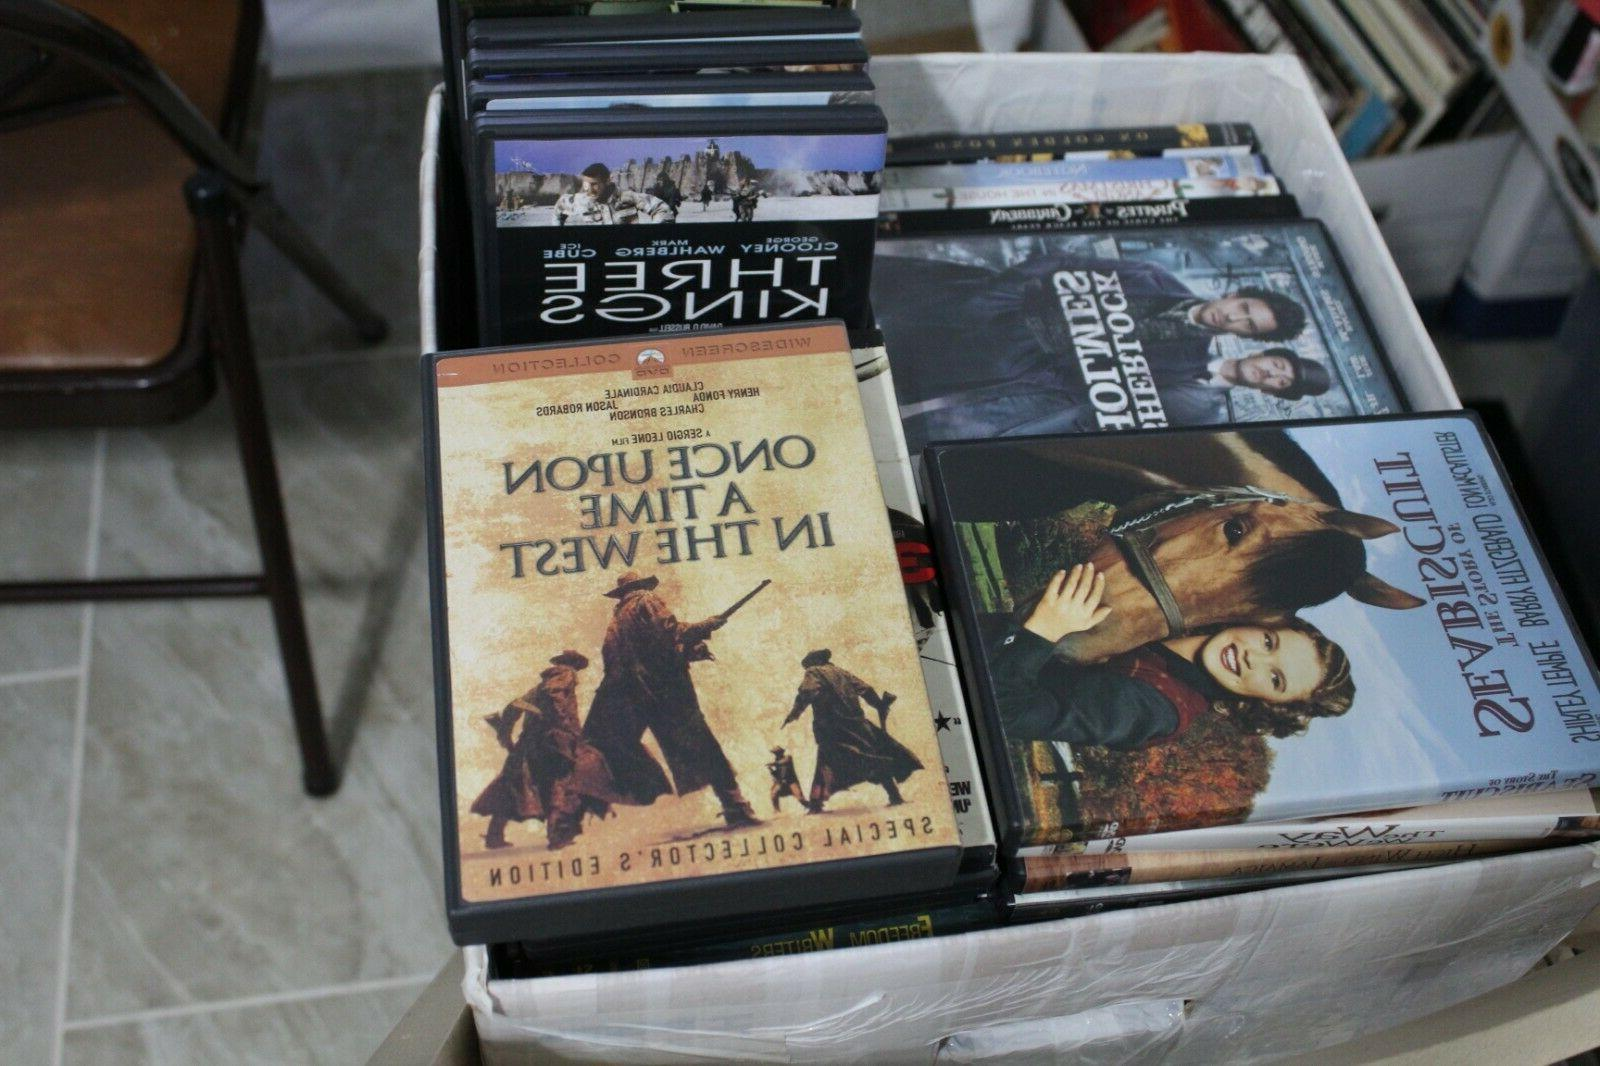 DVD's, TV AND SAVE , SHIPPING -:)